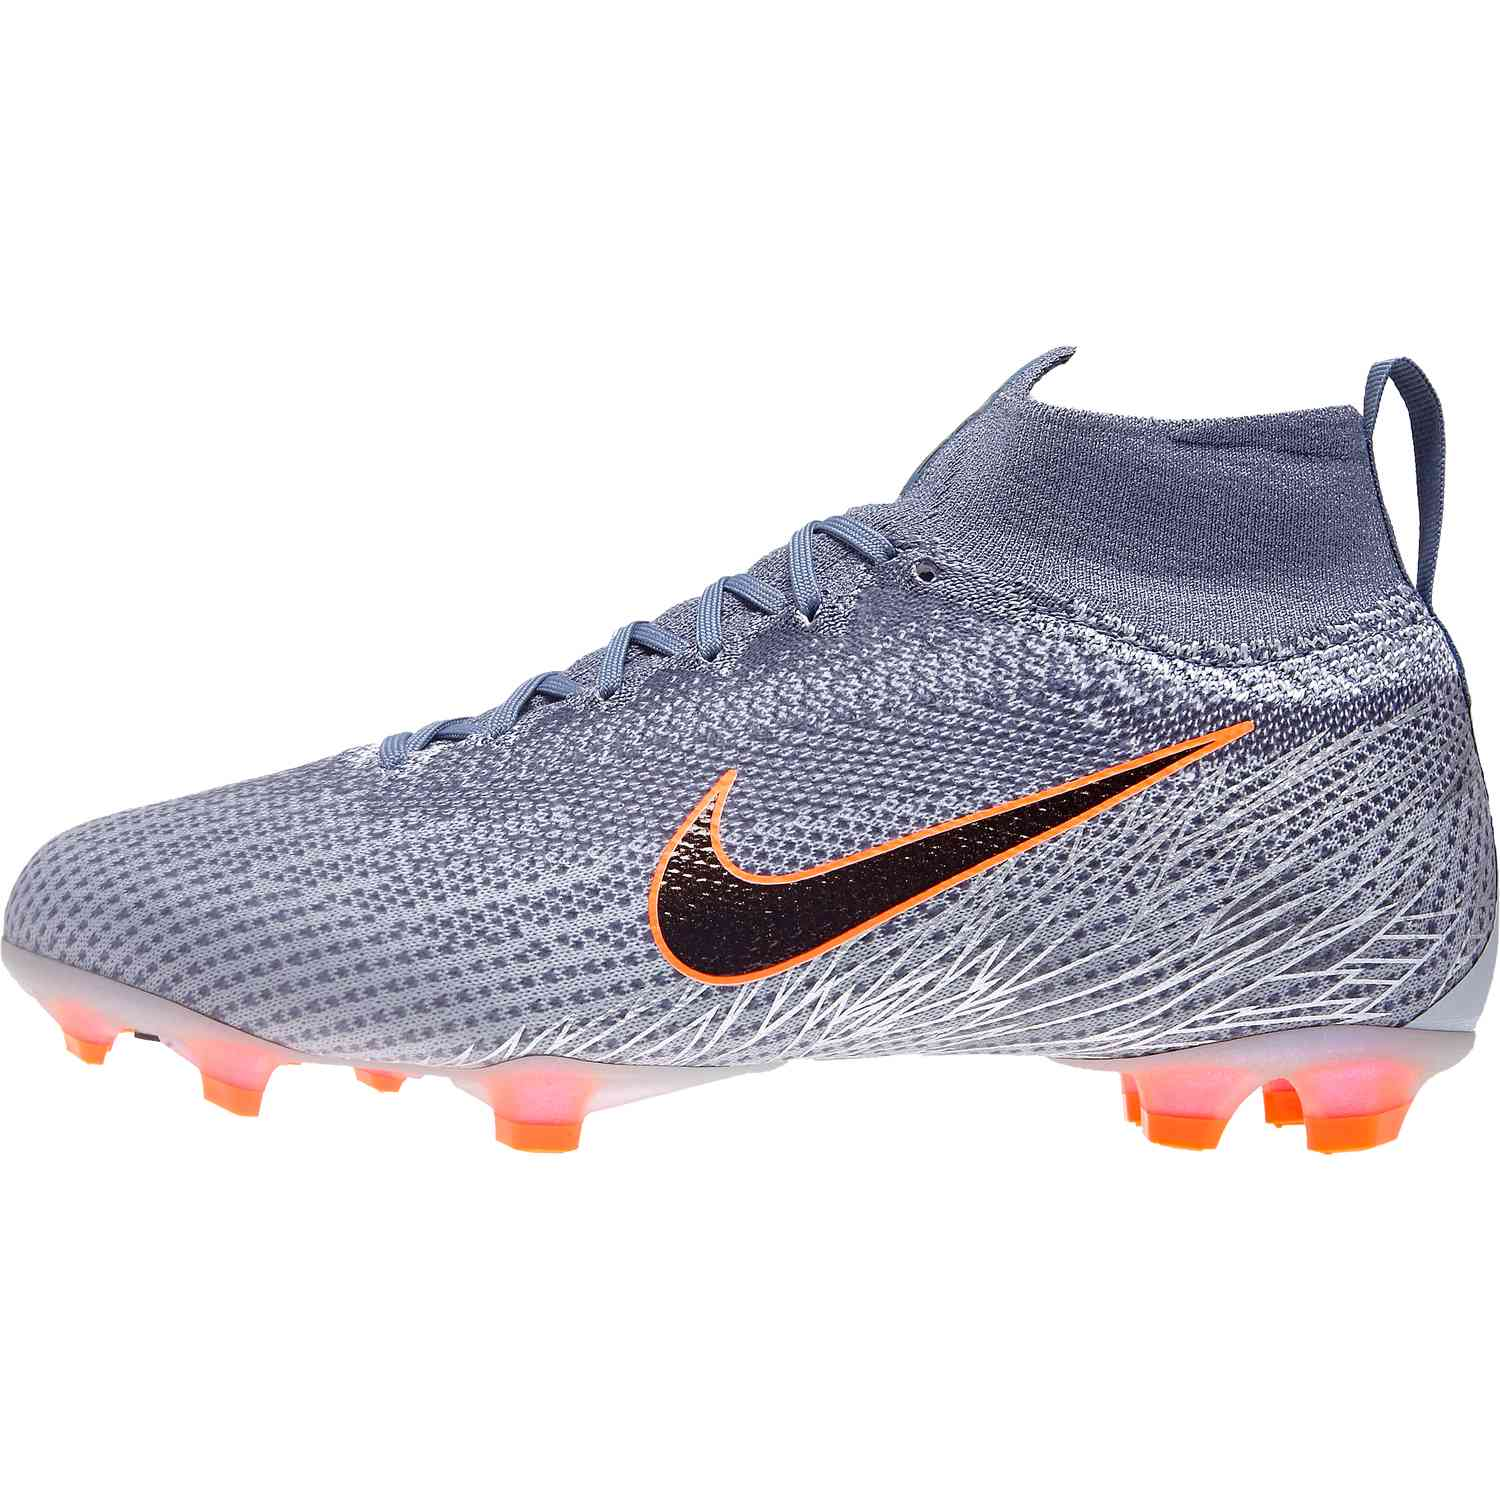 more photos 3498f 77071 Kids Nike Mercurial Superfly 6 Elite FG - Victory Pack - Soccer Master